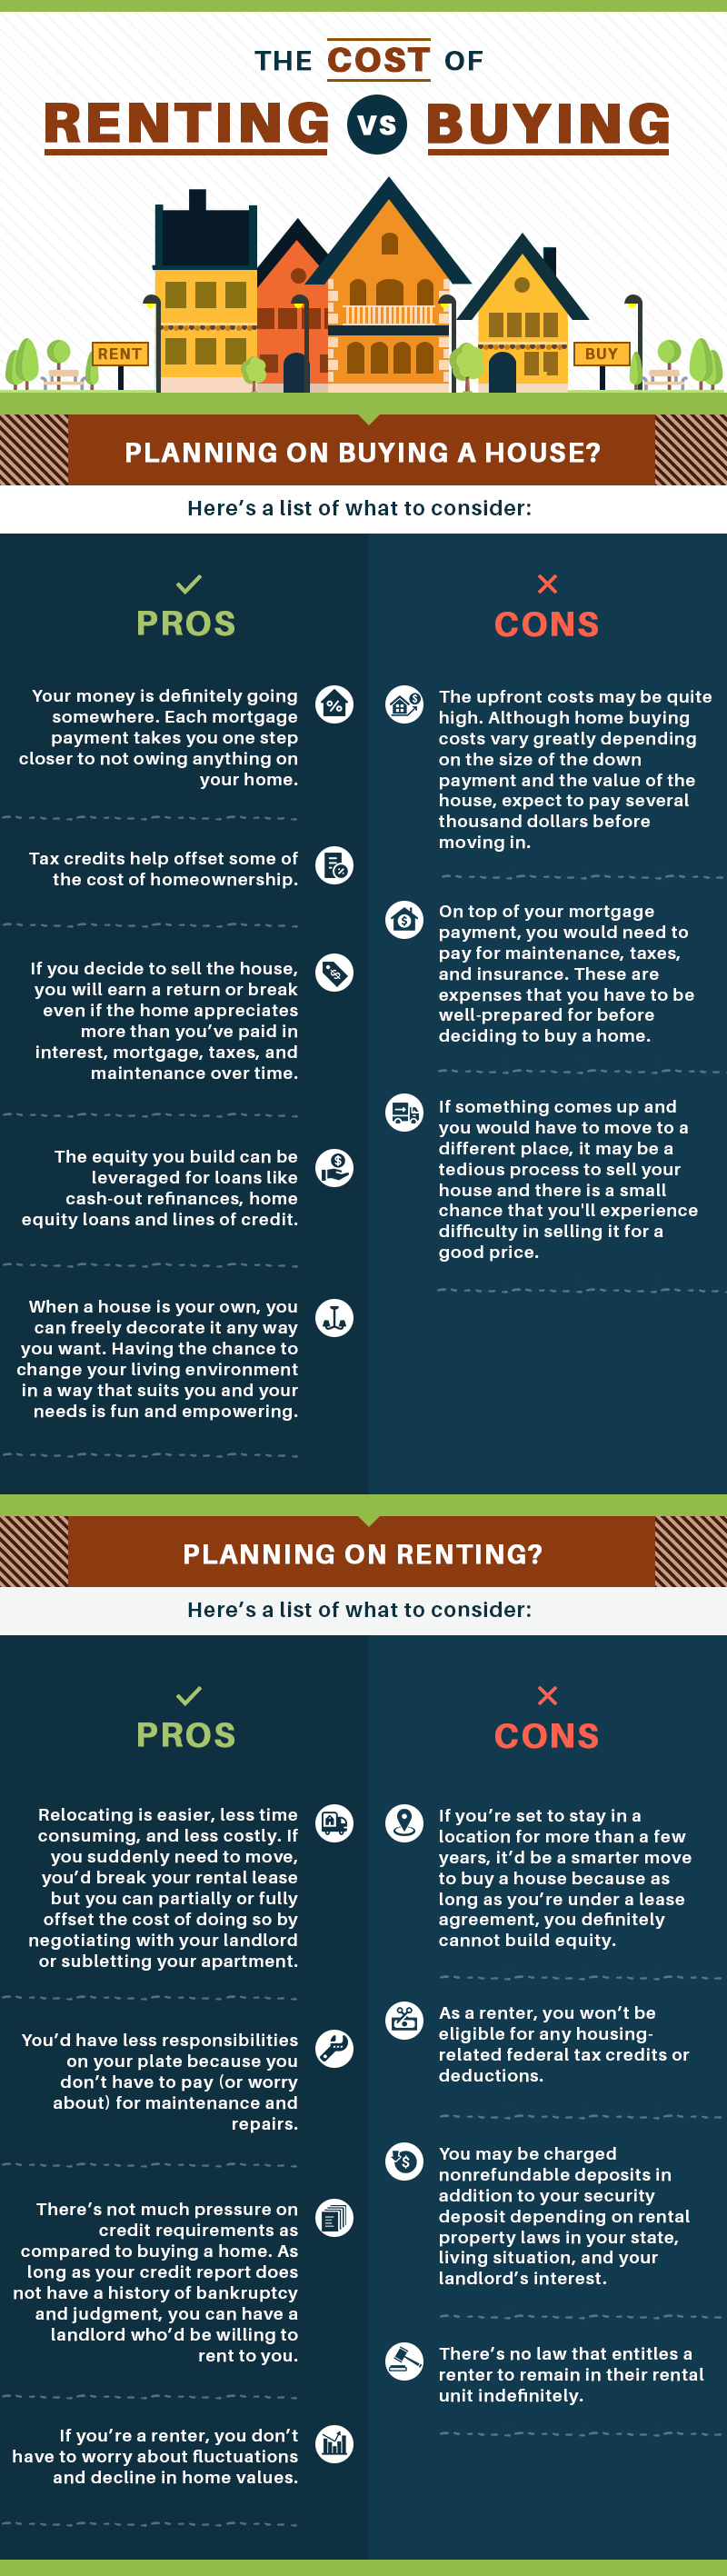 To Rent Or To Buy: Top Things You Should Know